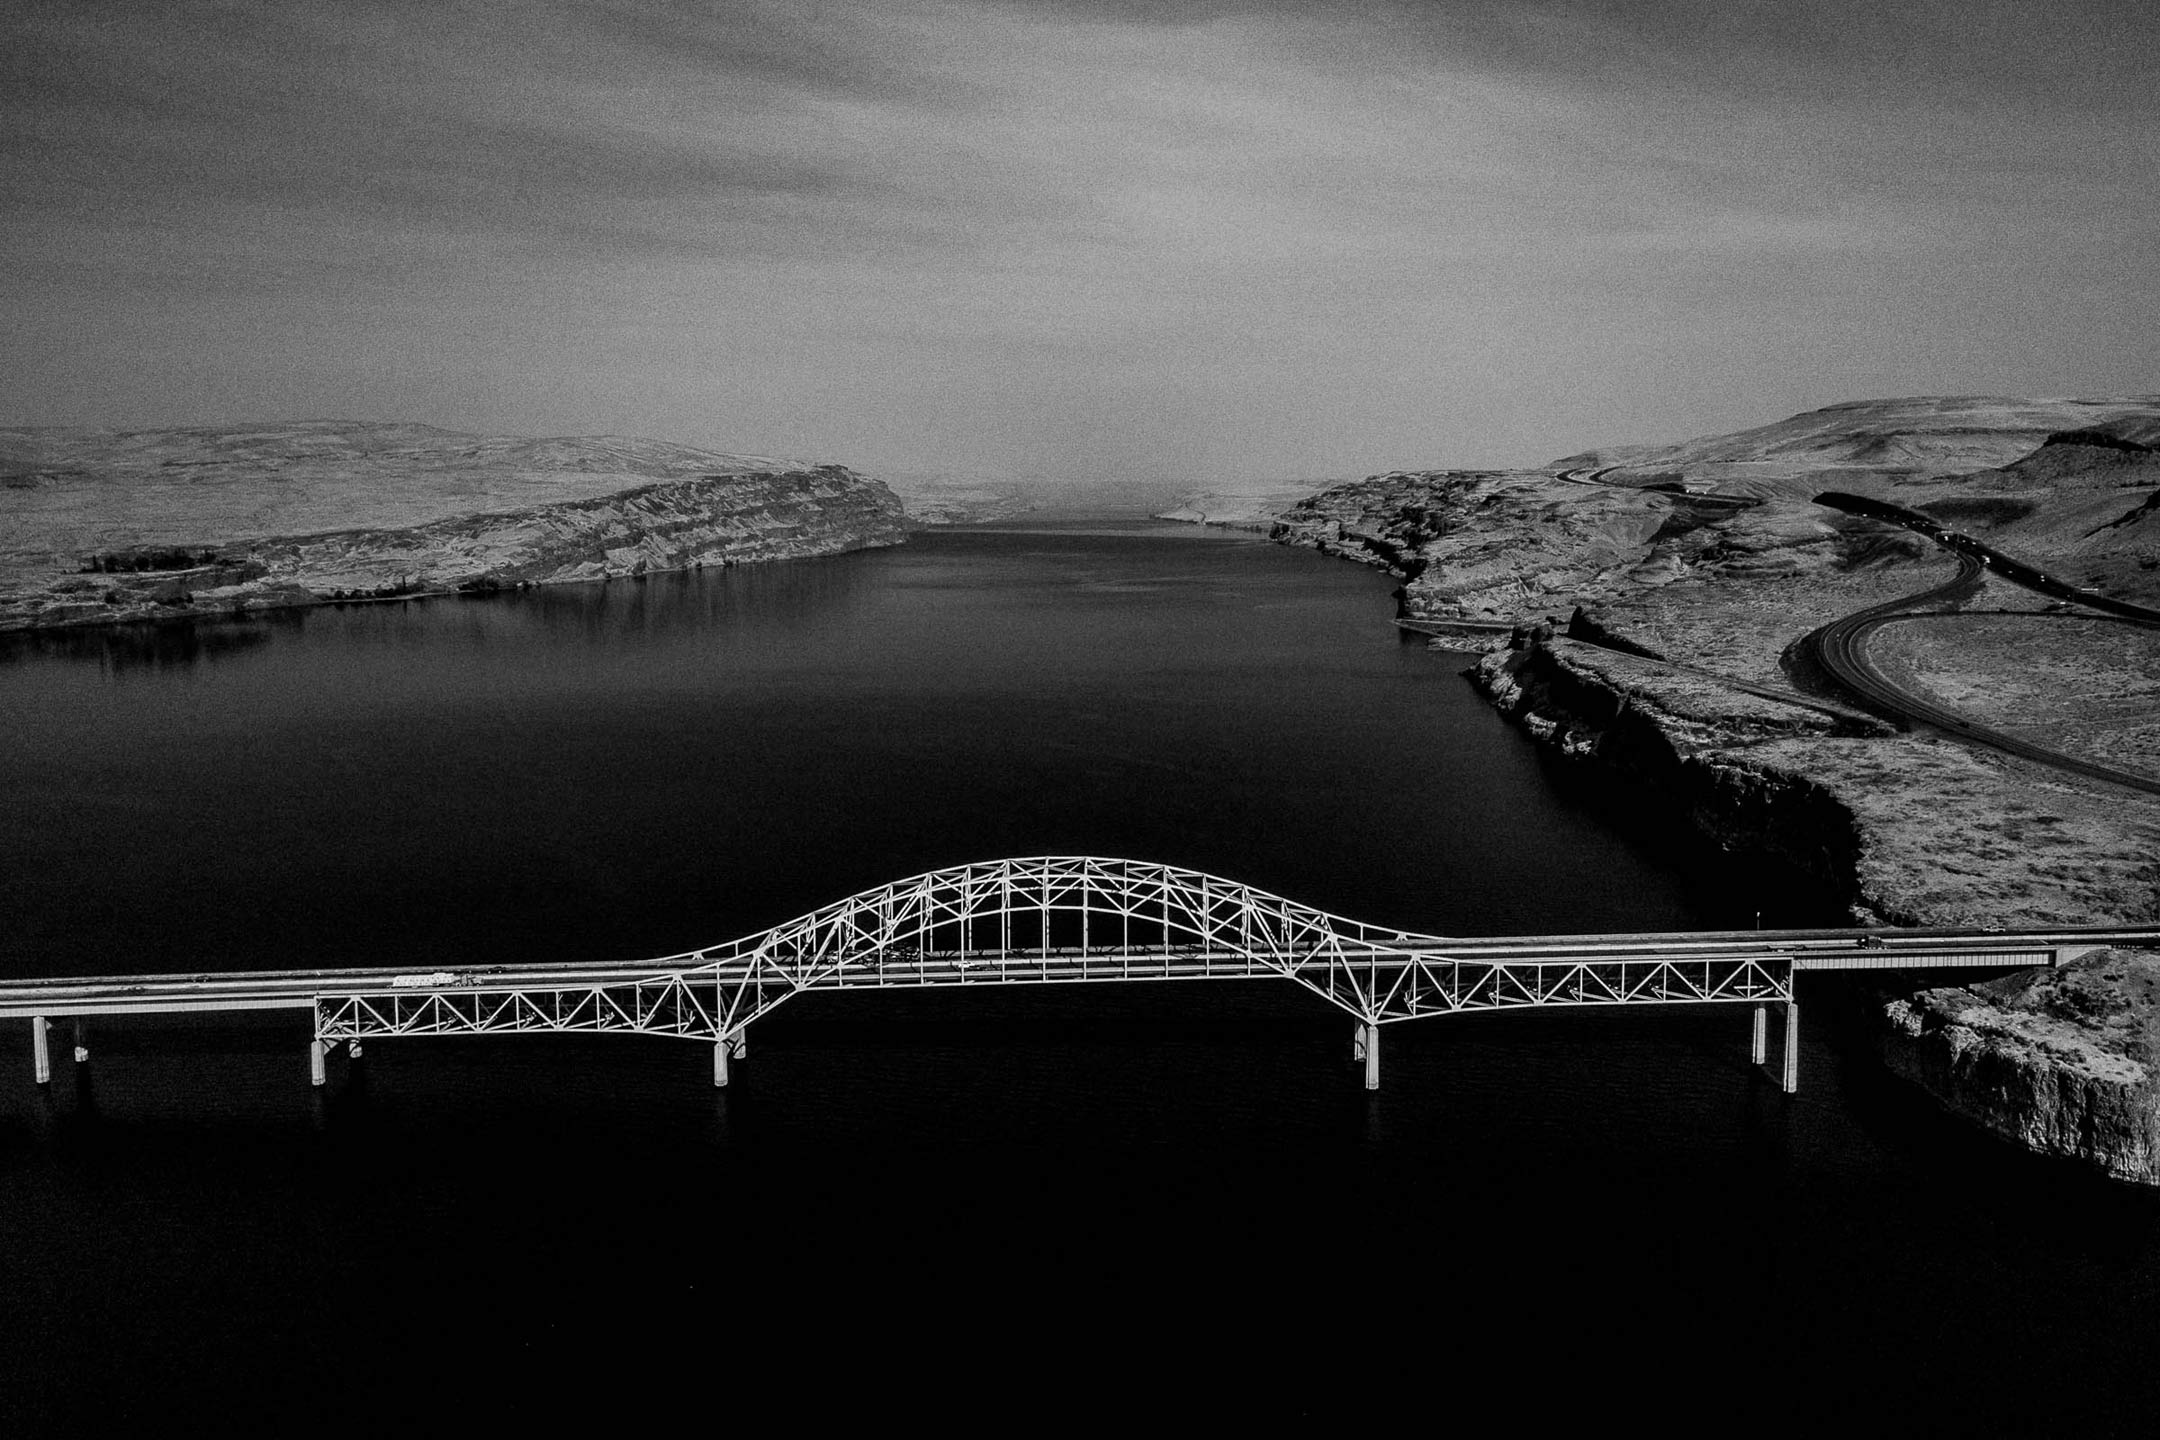 seattle_hyatt_regency_pnw_landscape_columbia_river_bridge_brandon_patoc_0001.jpg